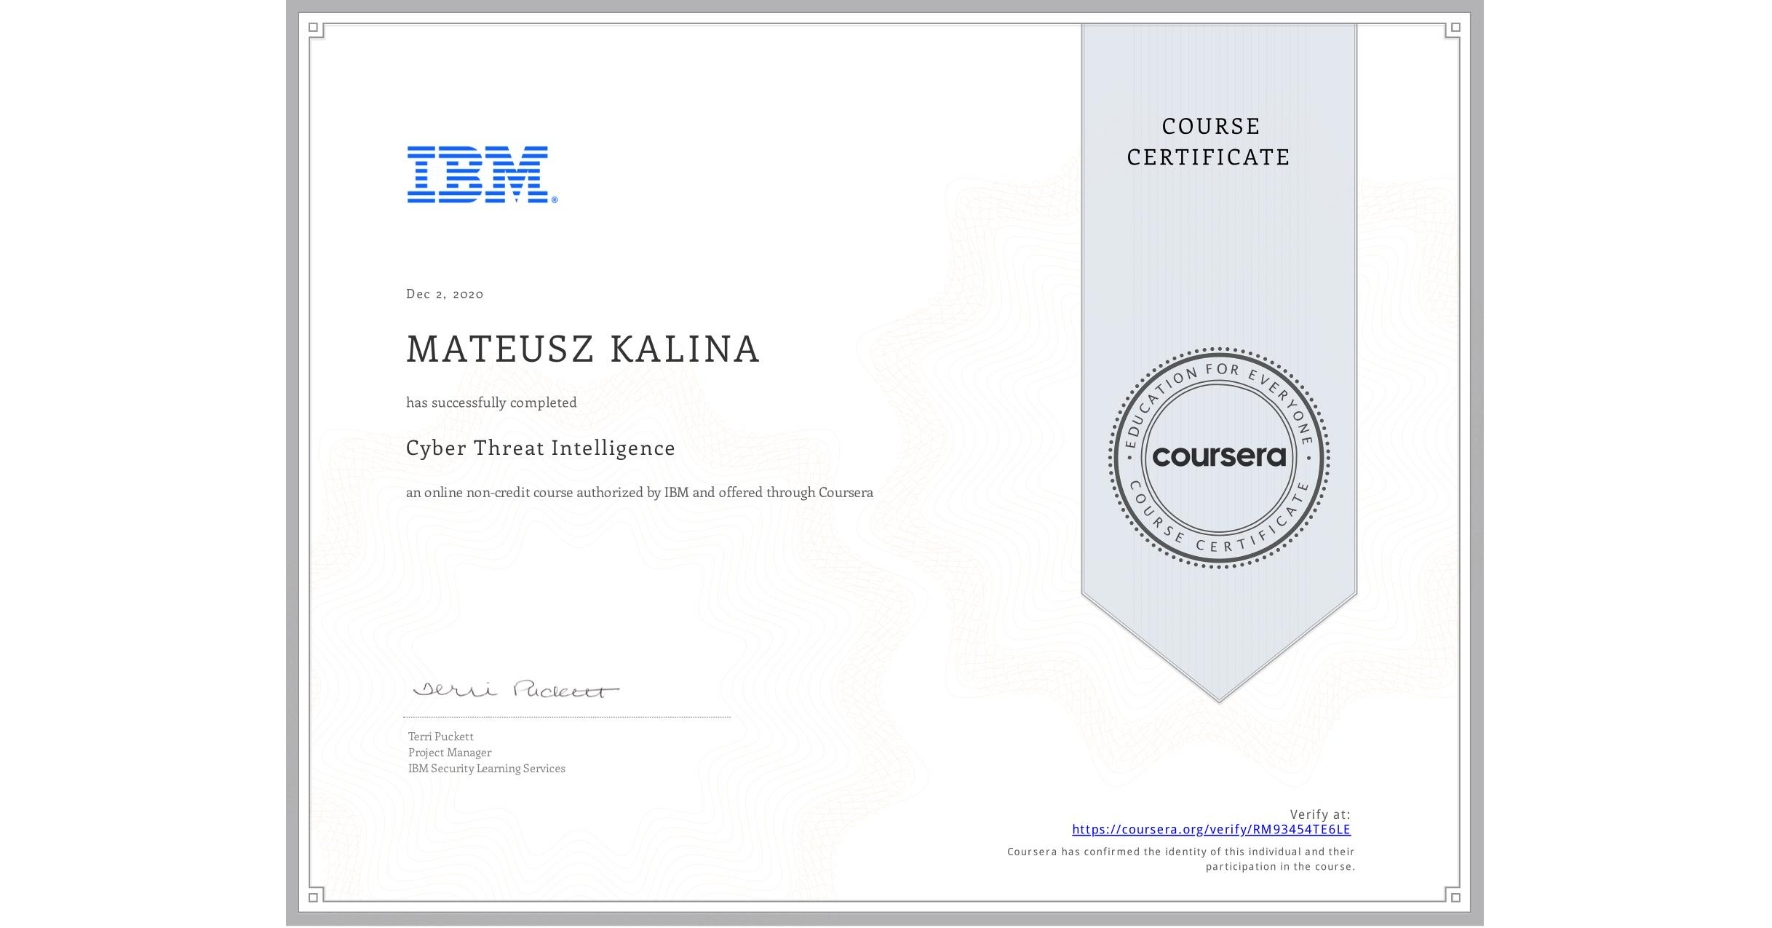 View certificate for MATEUSZ KALINA, Cyber Threat Intelligence, an online non-credit course authorized by IBM and offered through Coursera